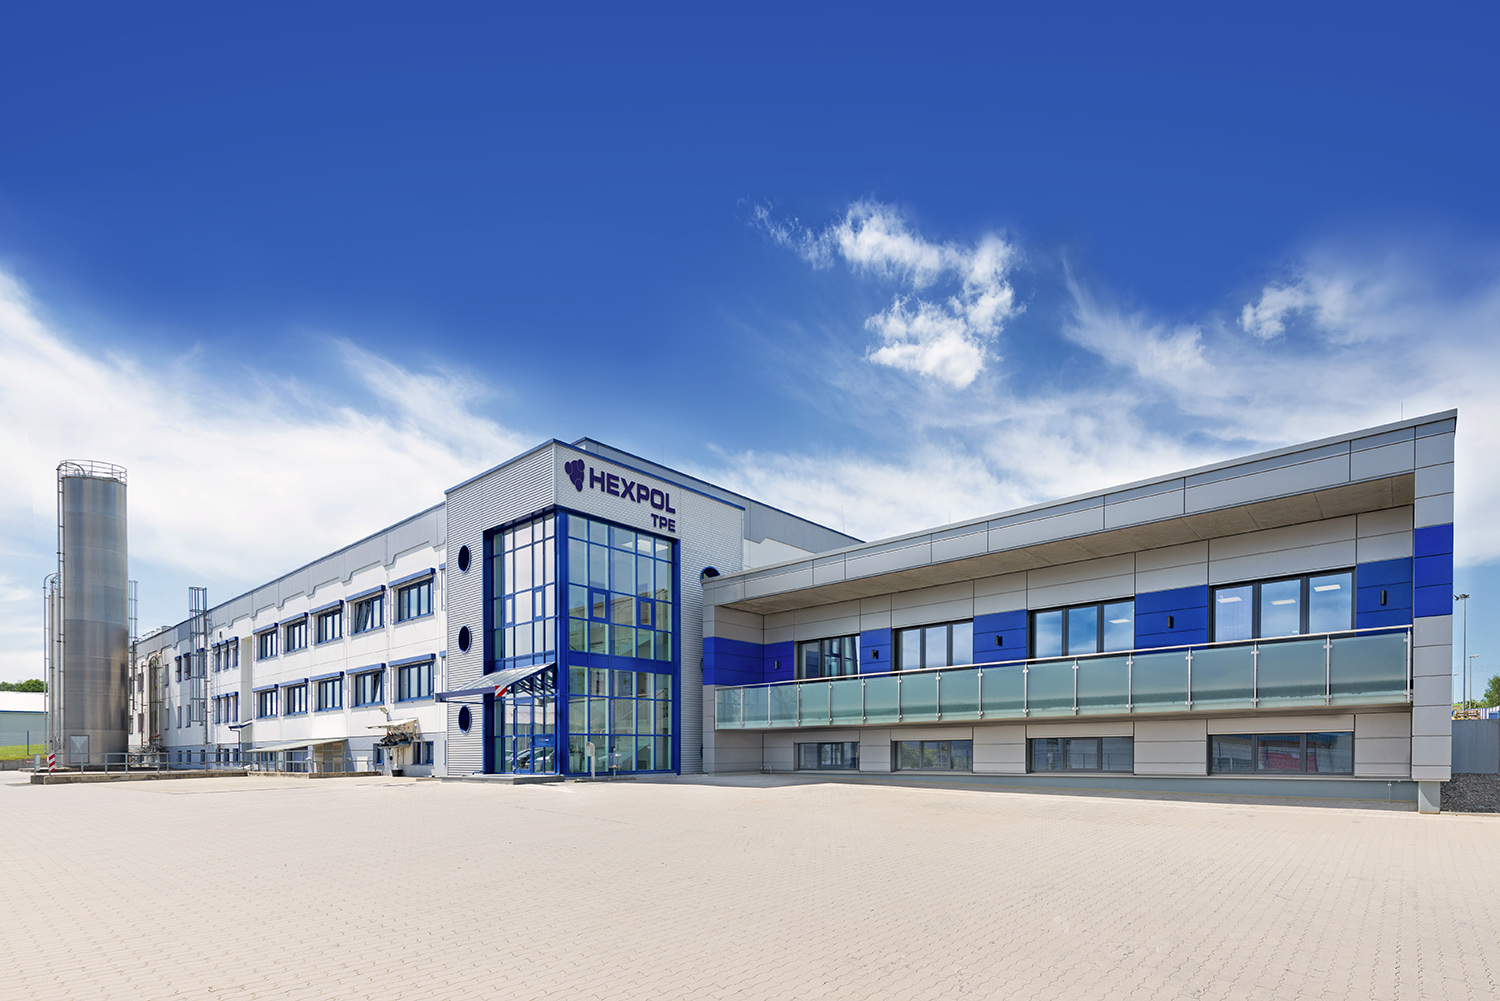 Hexpol TPE's plant in Lichtenfels, Germany (Source: Hexpol TPE)